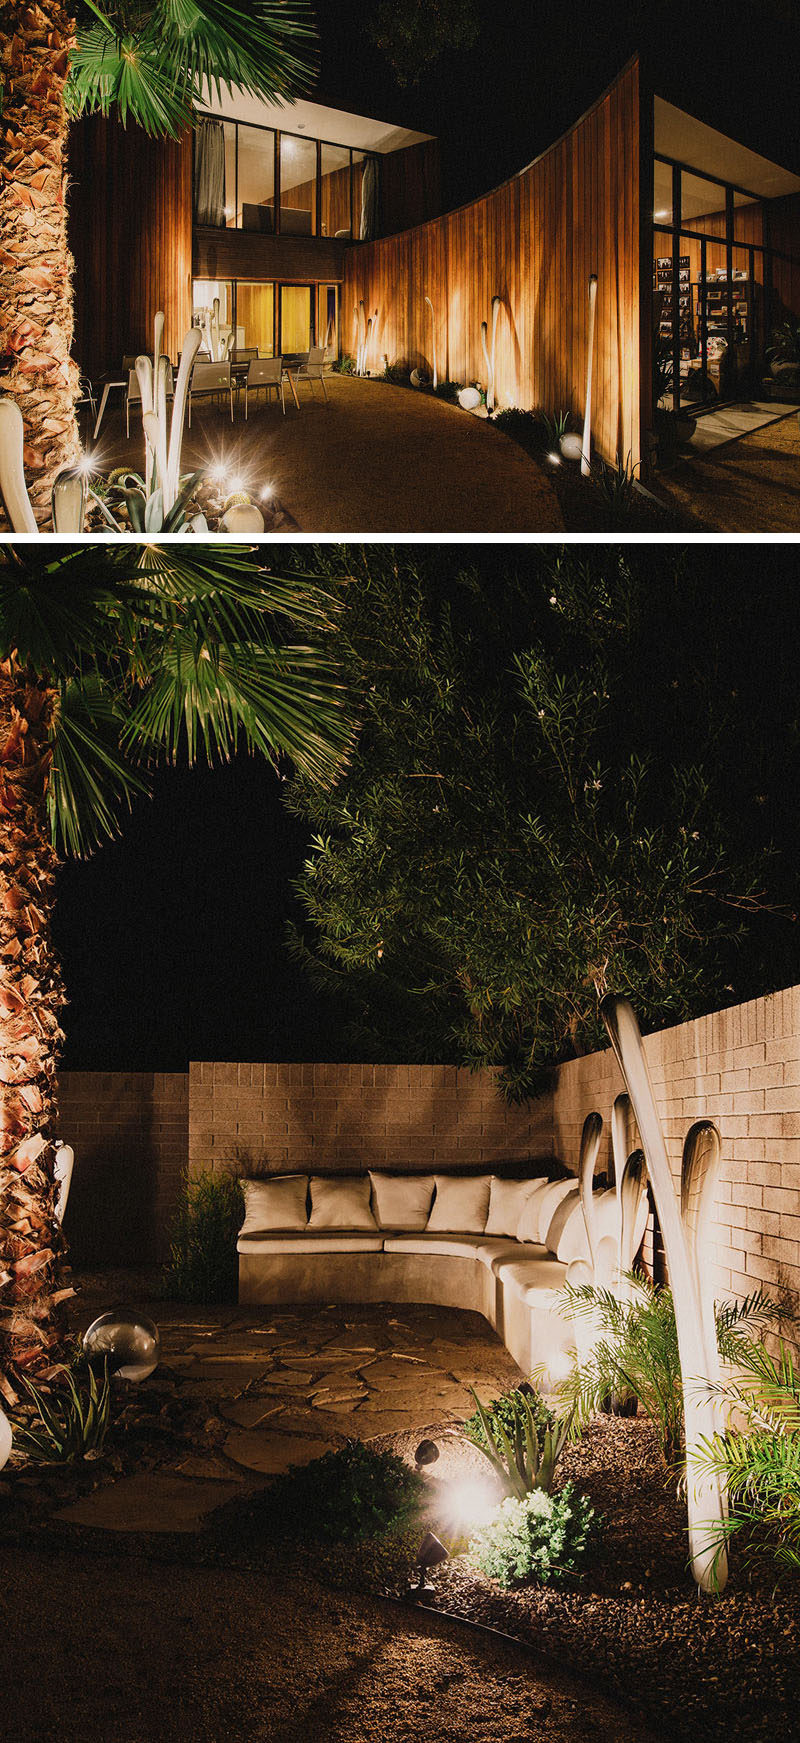 8 Outdoor Lighting Ideas To Inspire Your Spring Backyard Makeover Uplighting Make A Statement